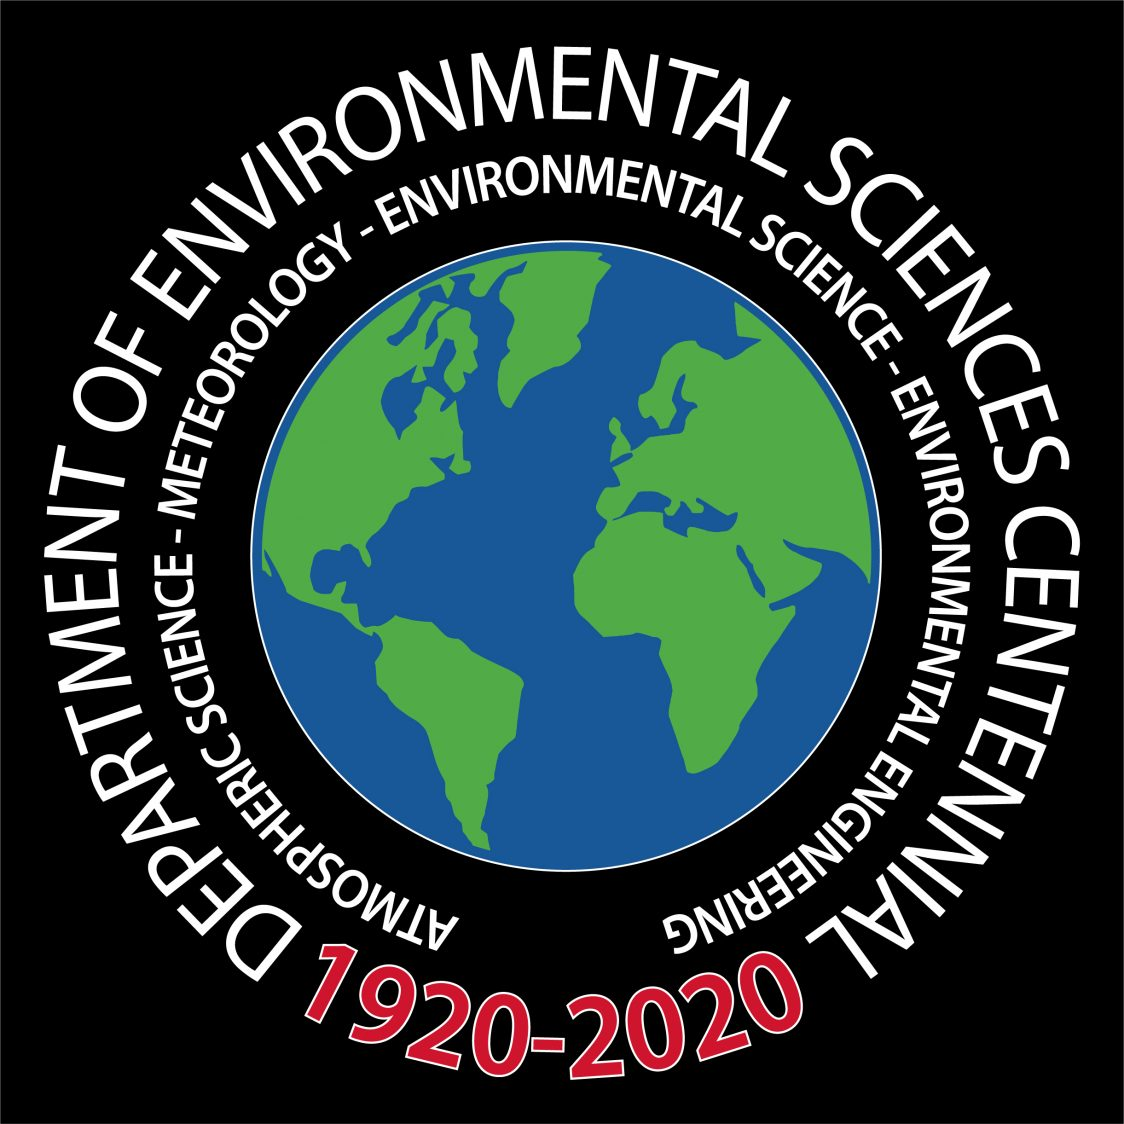 The Department of Environmental Sciences is Awarded a 2020 Governor's Environmental Excellence Award